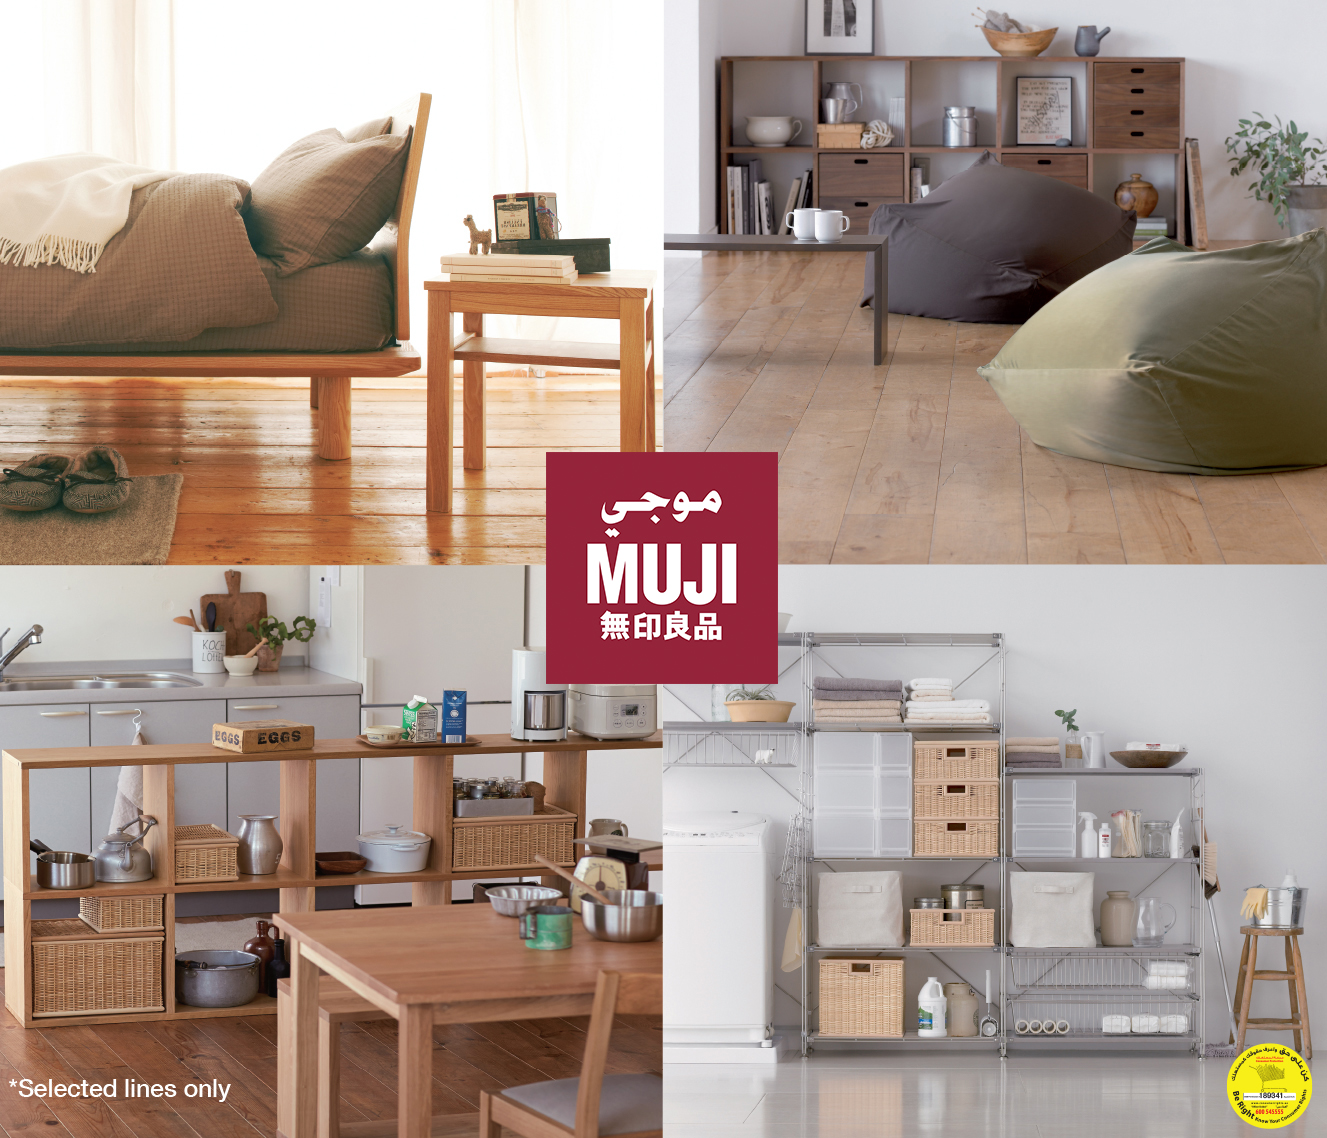 Muji Spend More Save More Offer - Dubaisavers